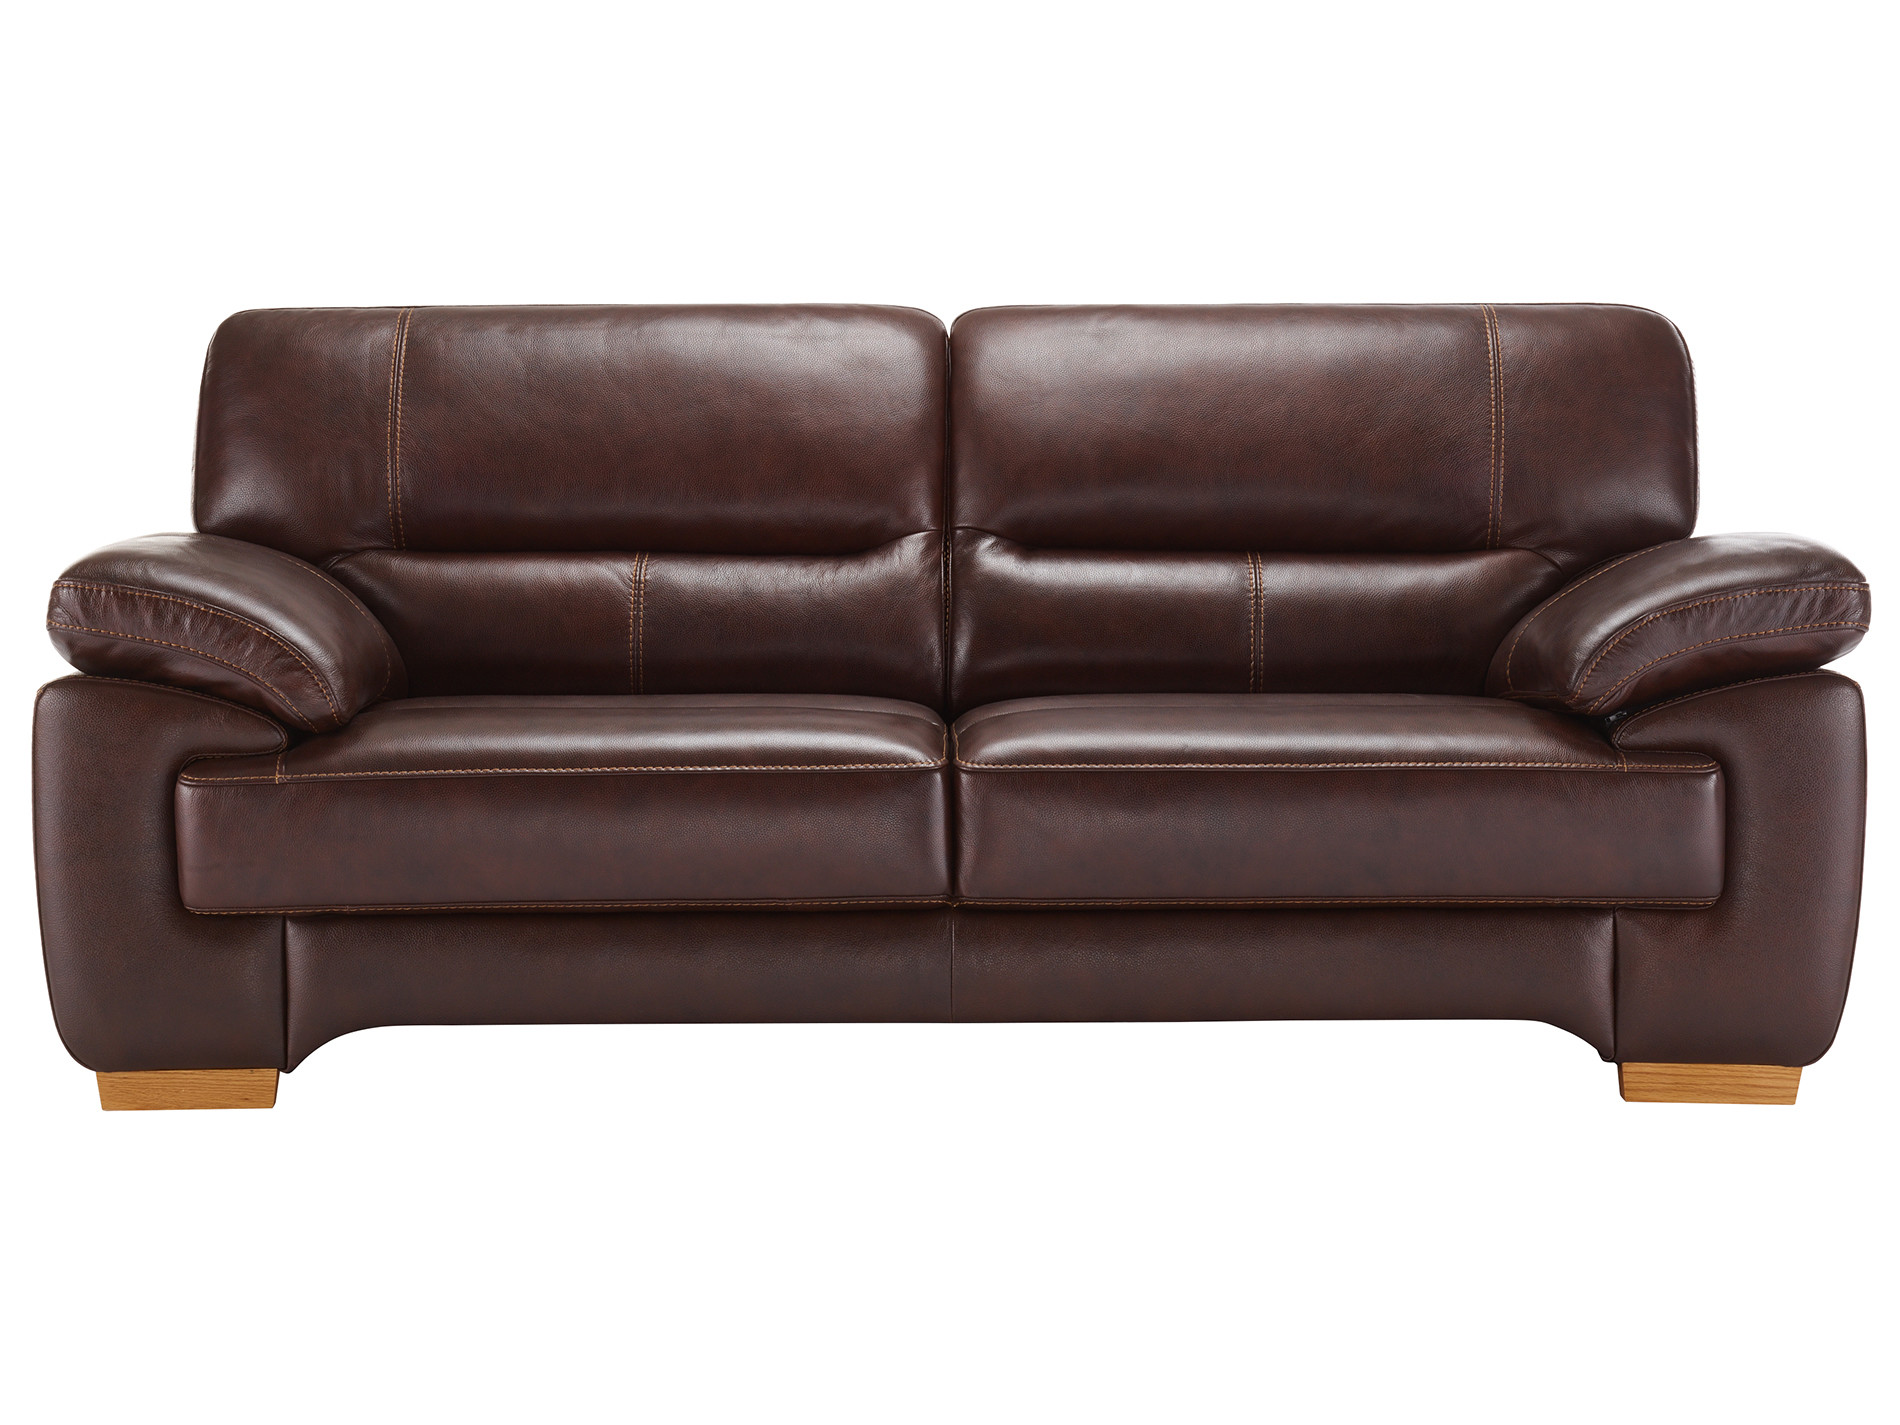 Oakland Furniture Sofas